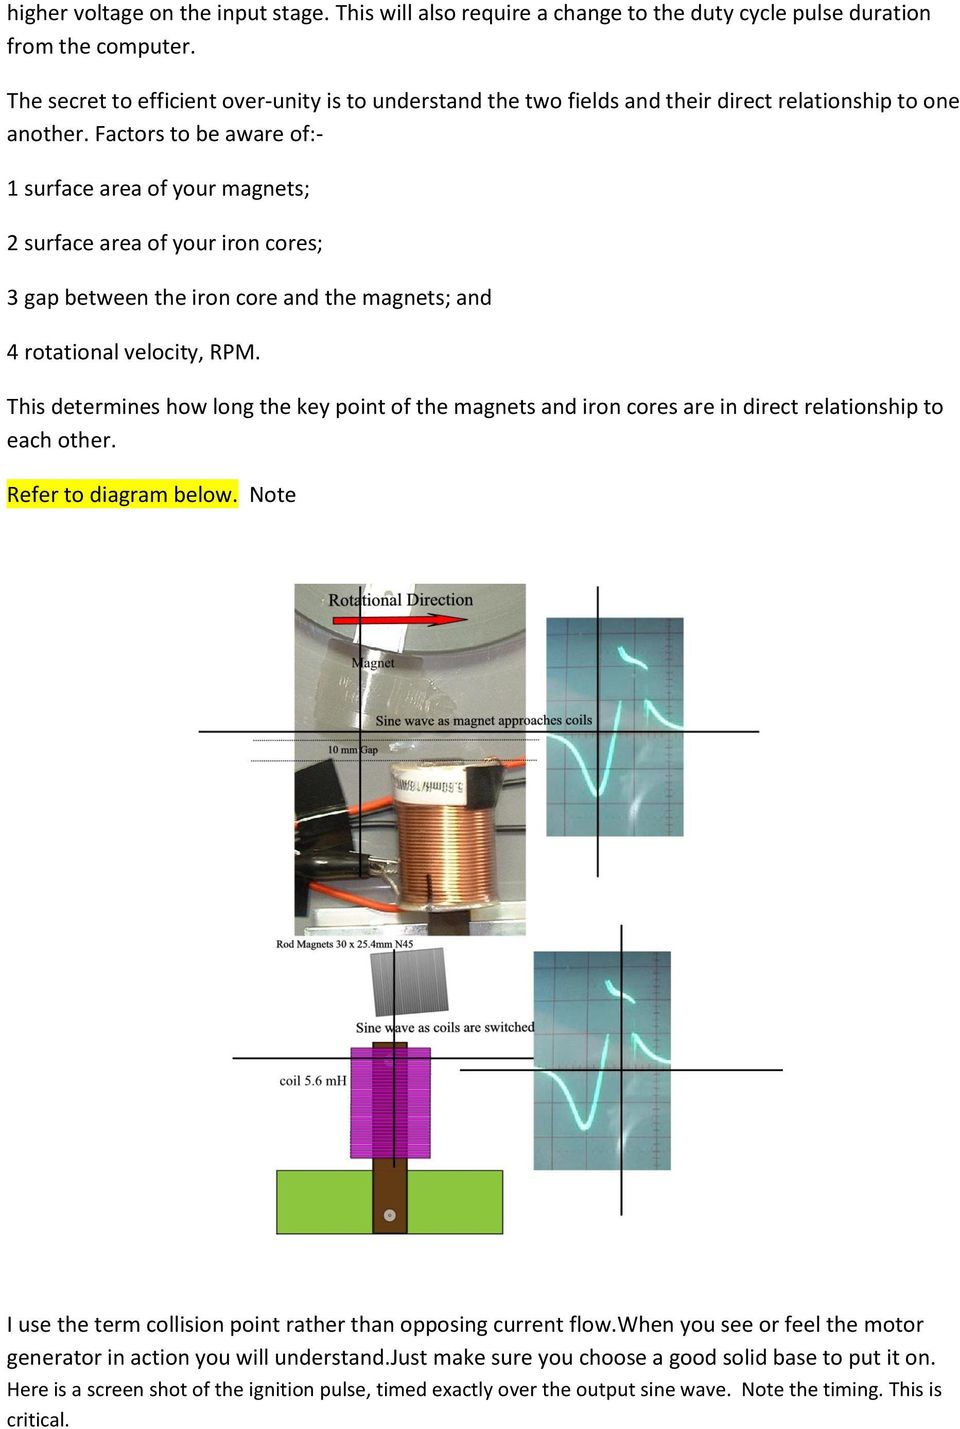 Rodin Coil Diagram Panacea Bocaf On Line University Pdf Factors To Be Aware Of 1 Surface Area Your Magnets 2